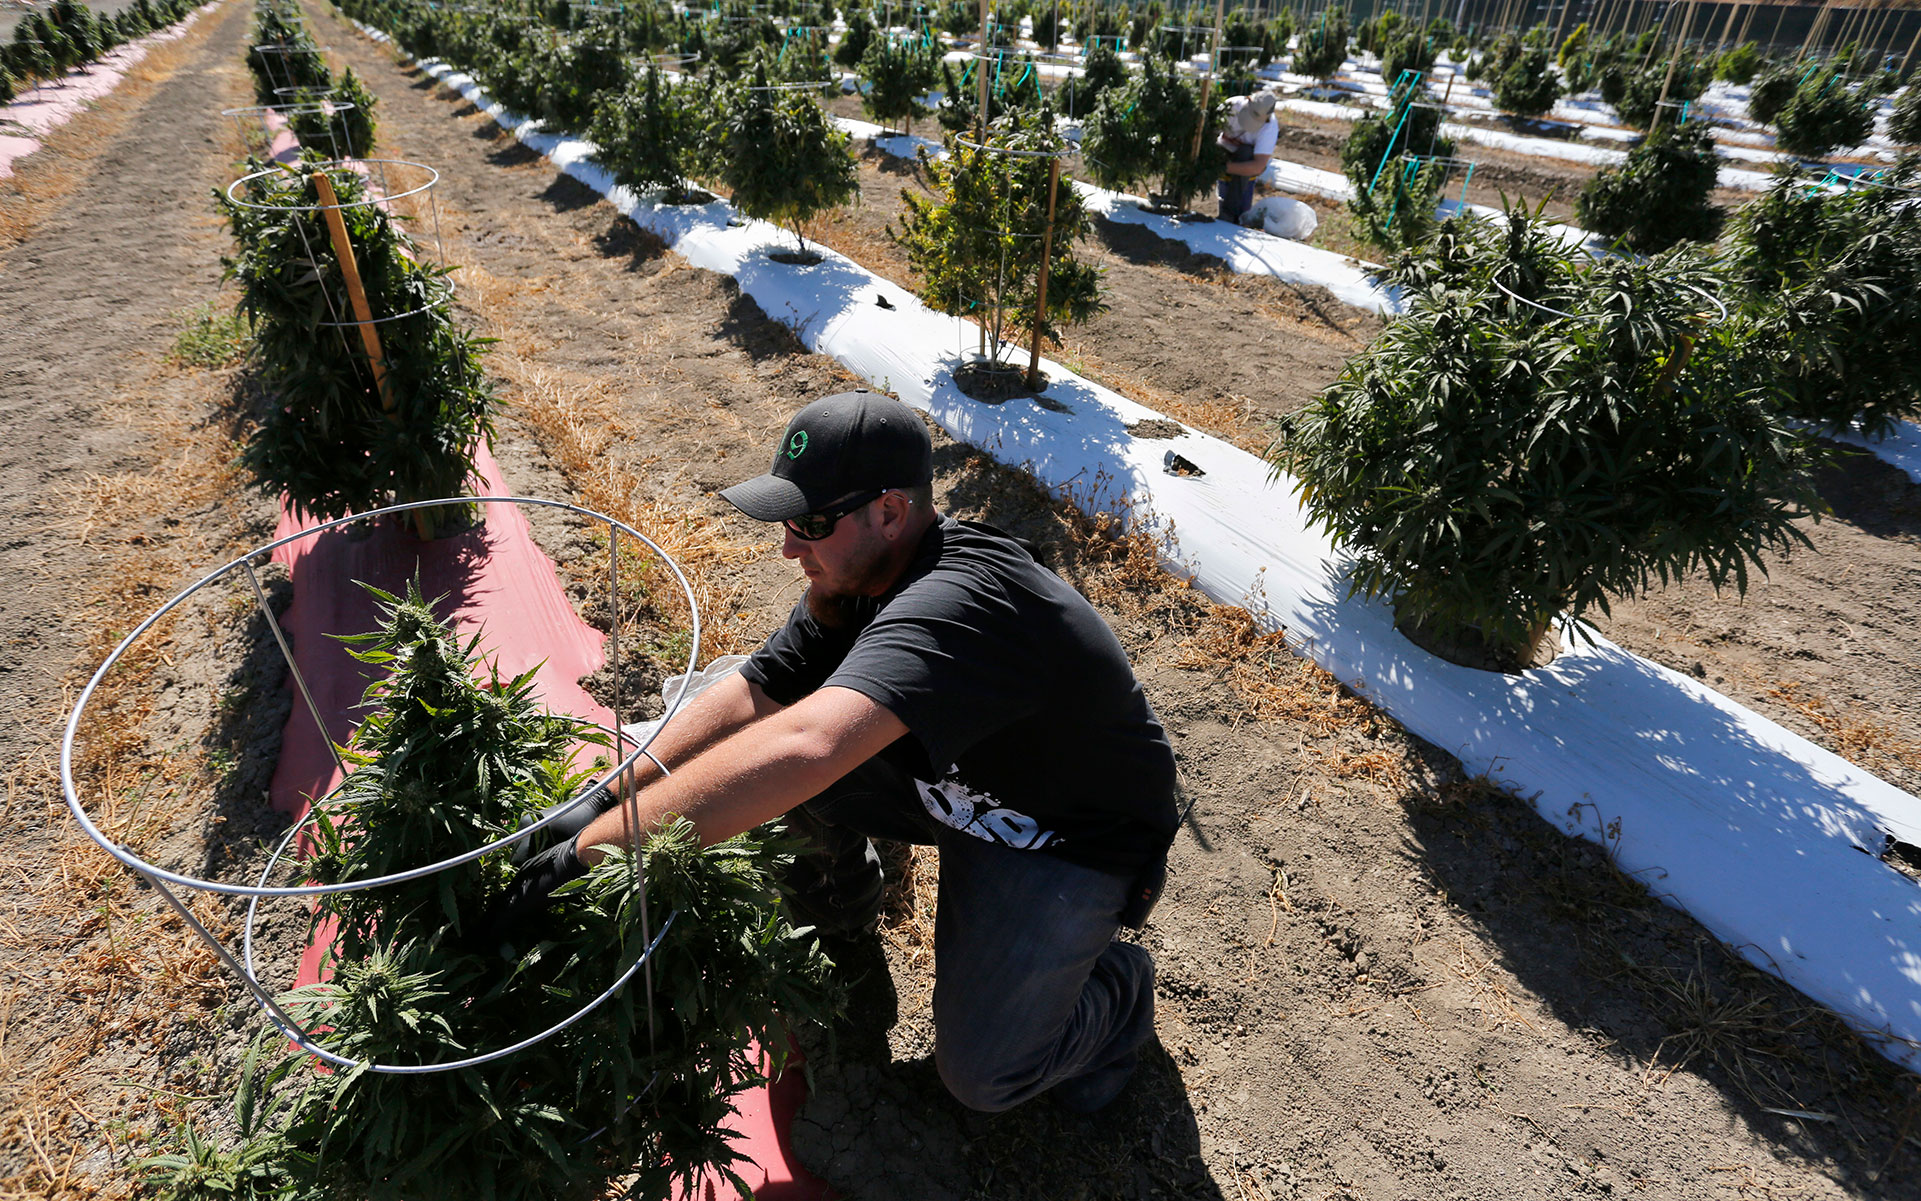 Prices are up on strong demand and limited supplies in the legal cannabis markets this harvest season. In a 2016 photo, a southern Colorado farmworker helps prepare a five-ton harvest on 36 acres. (Brennan Linsley/AP)